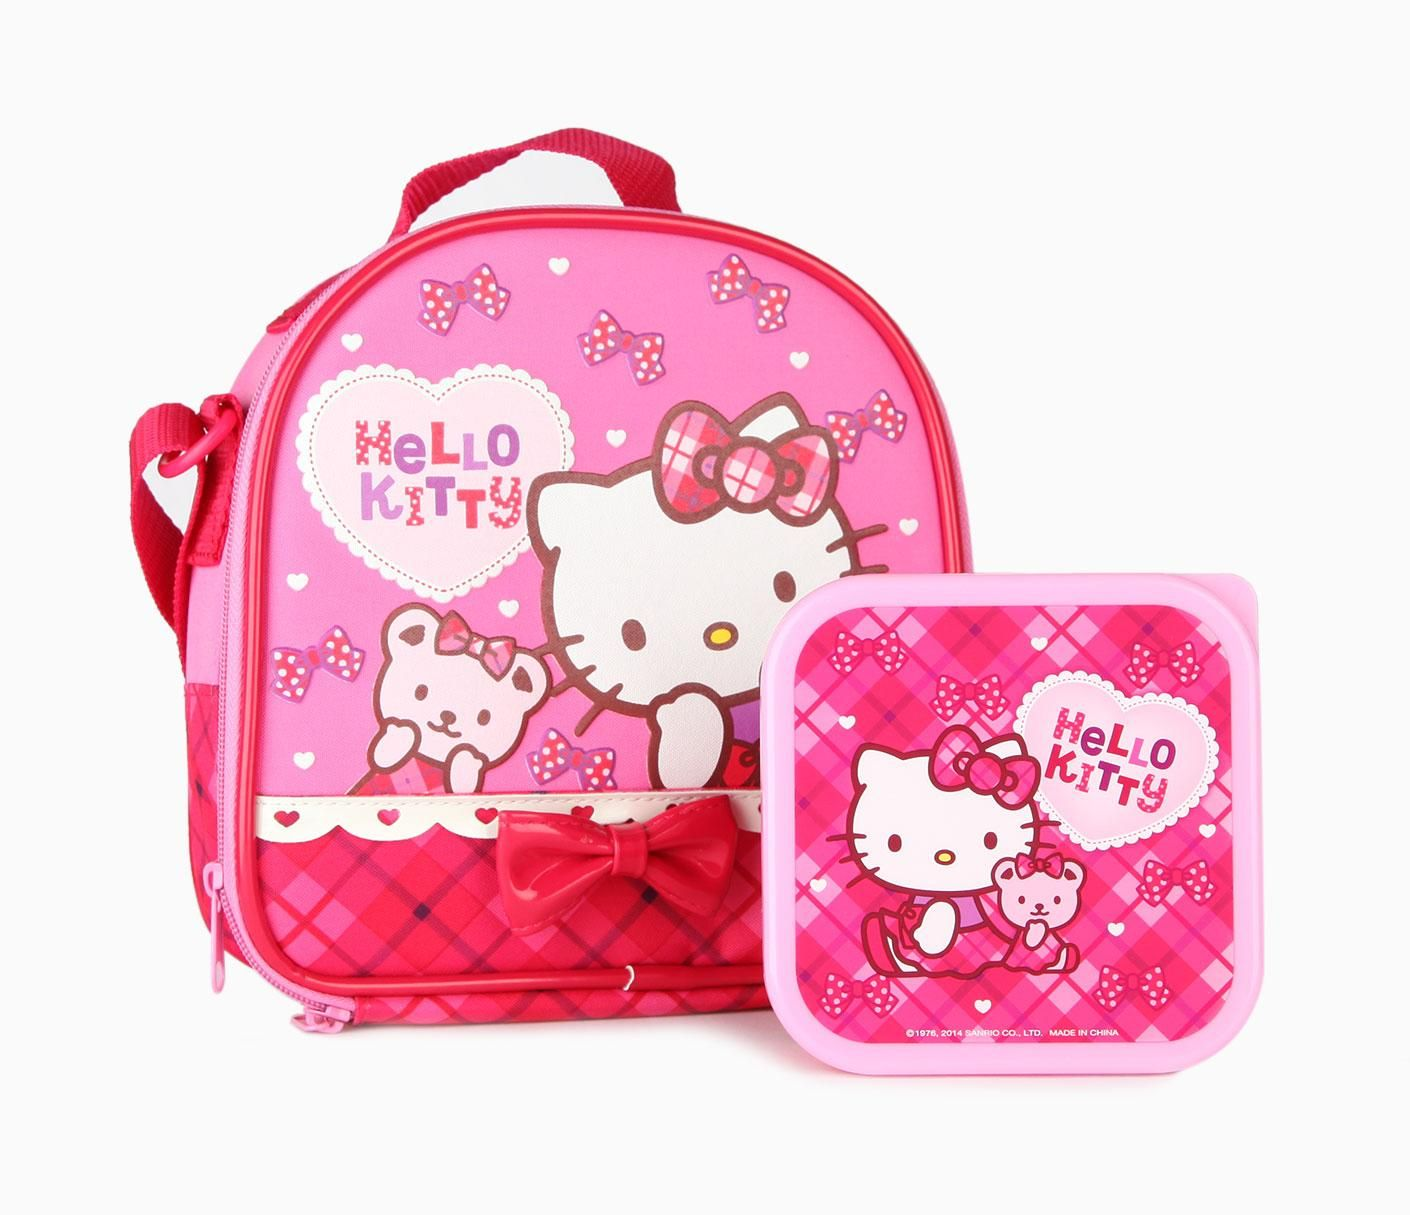 Hello Kitty Lunch Bag with Container: Sunday